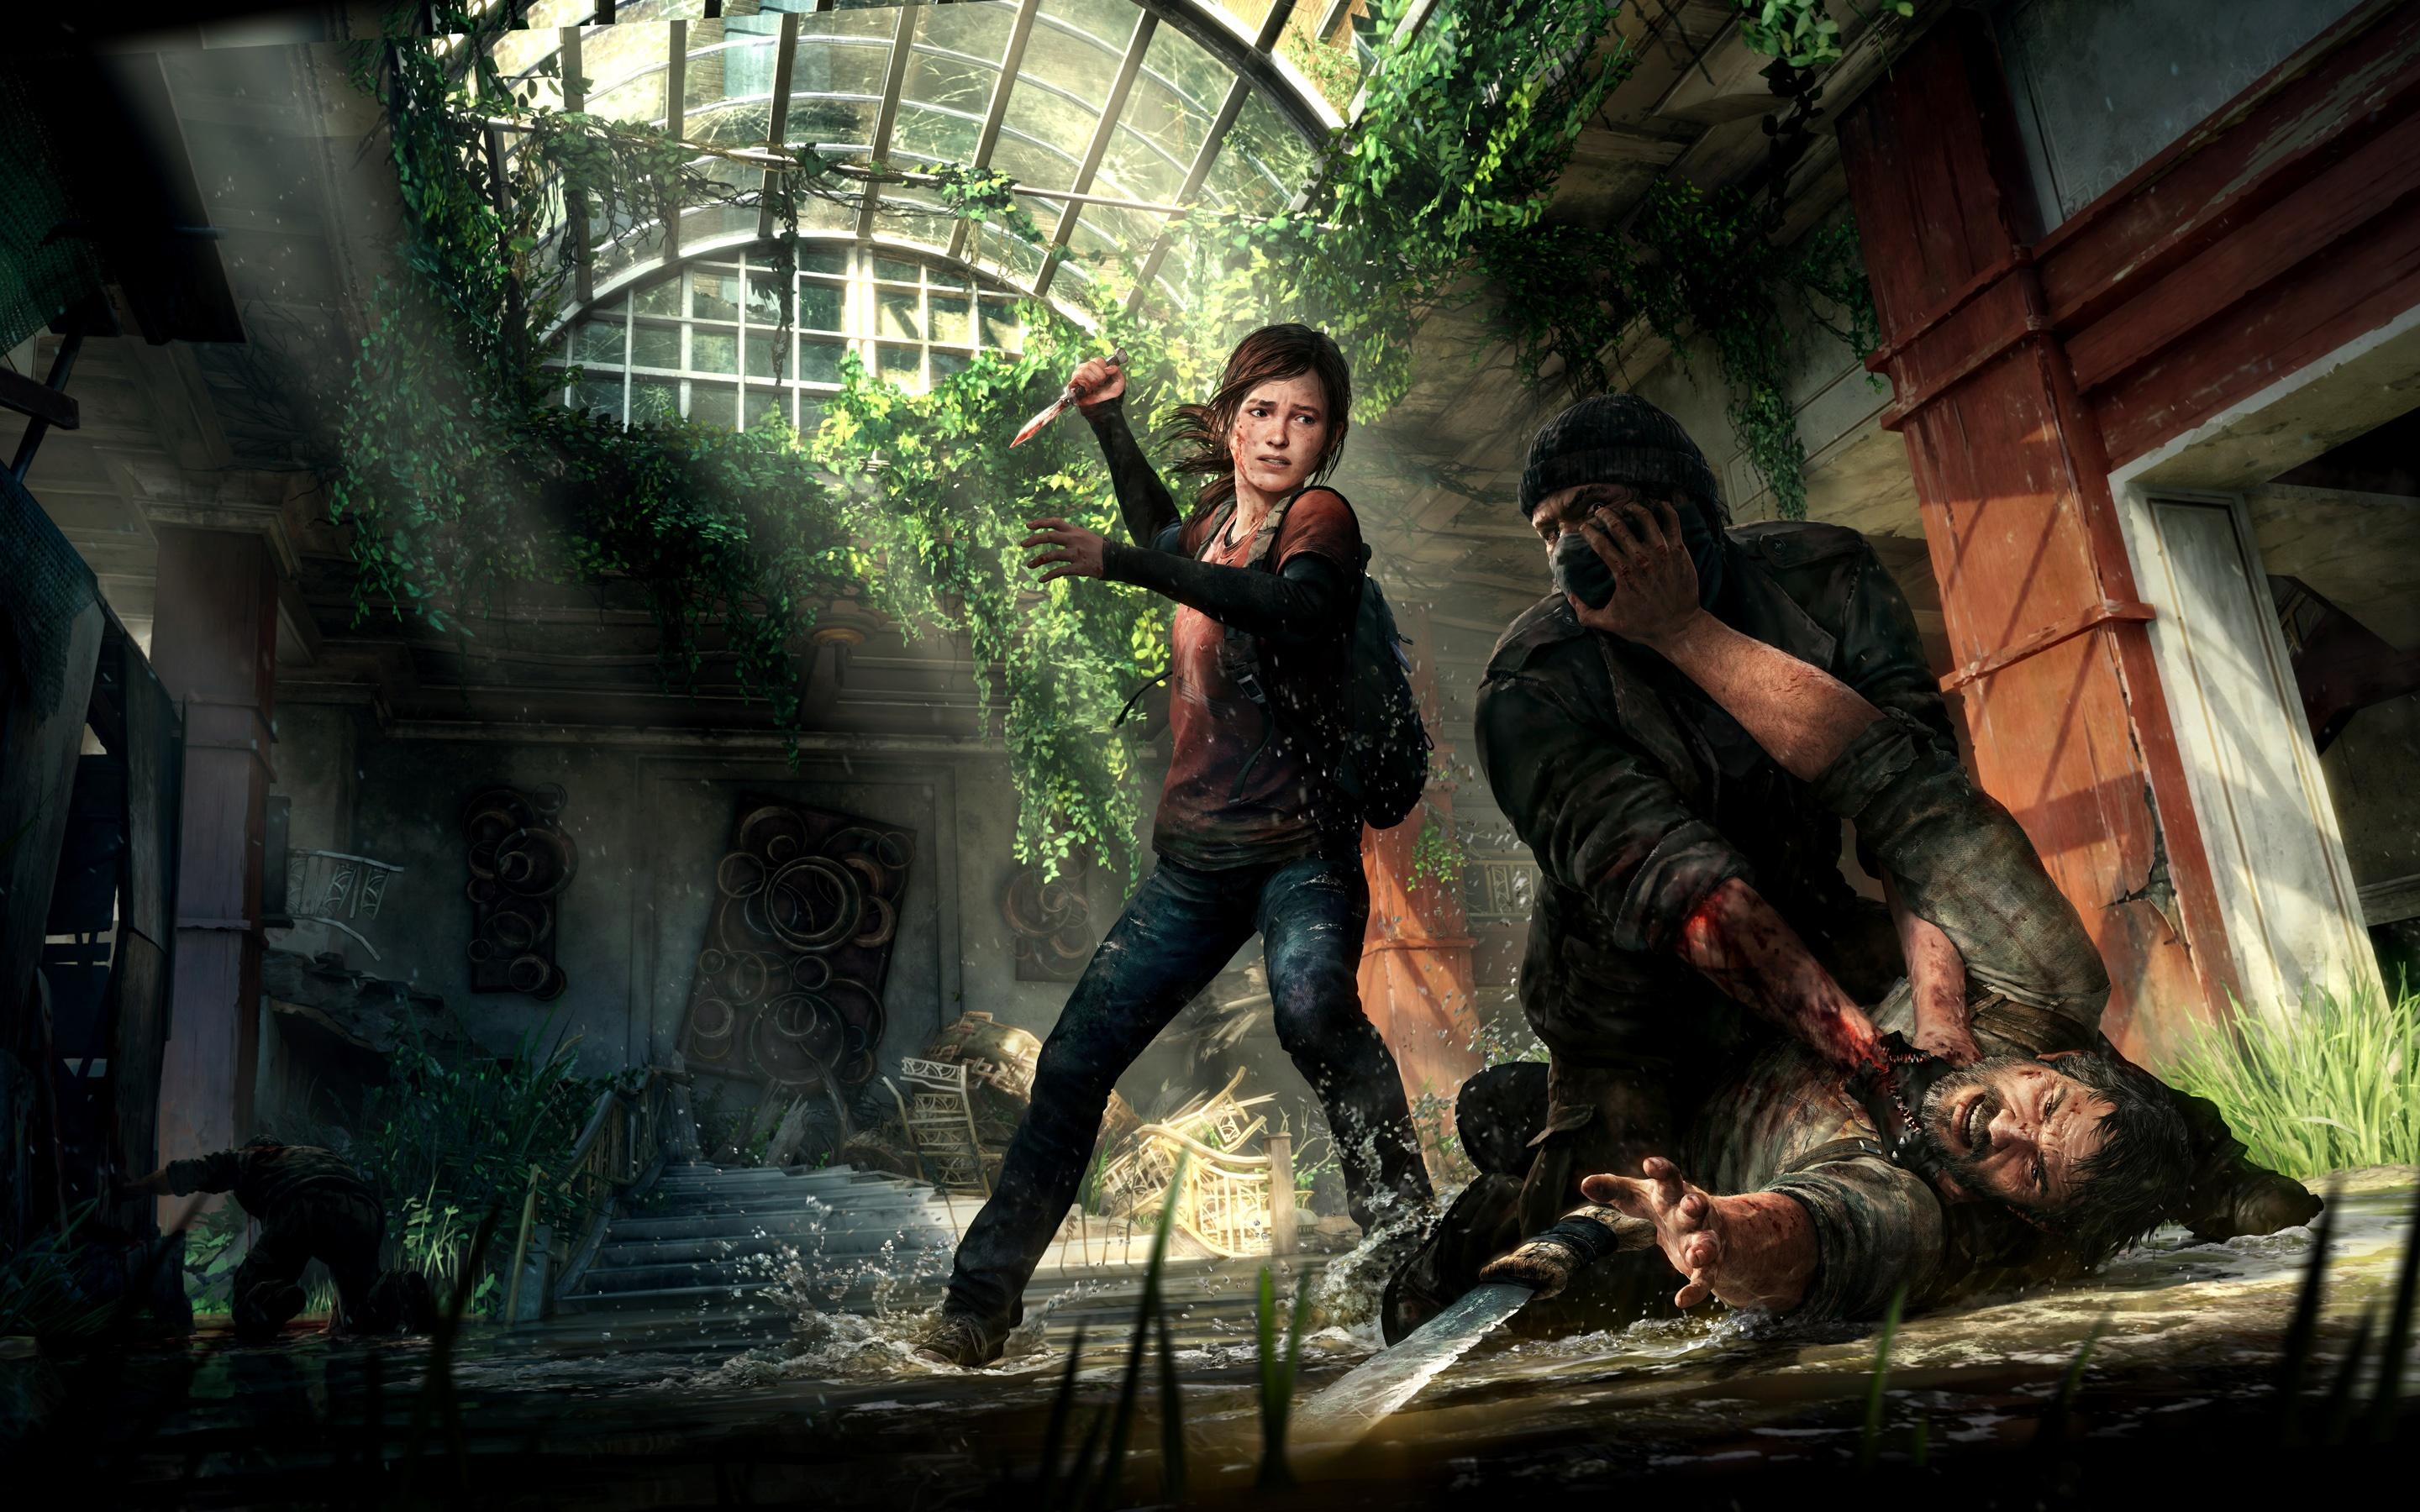 Ps3 games wallpaper wallpapers for free download about 4993 the last of us ps3 game voltagebd Image collections